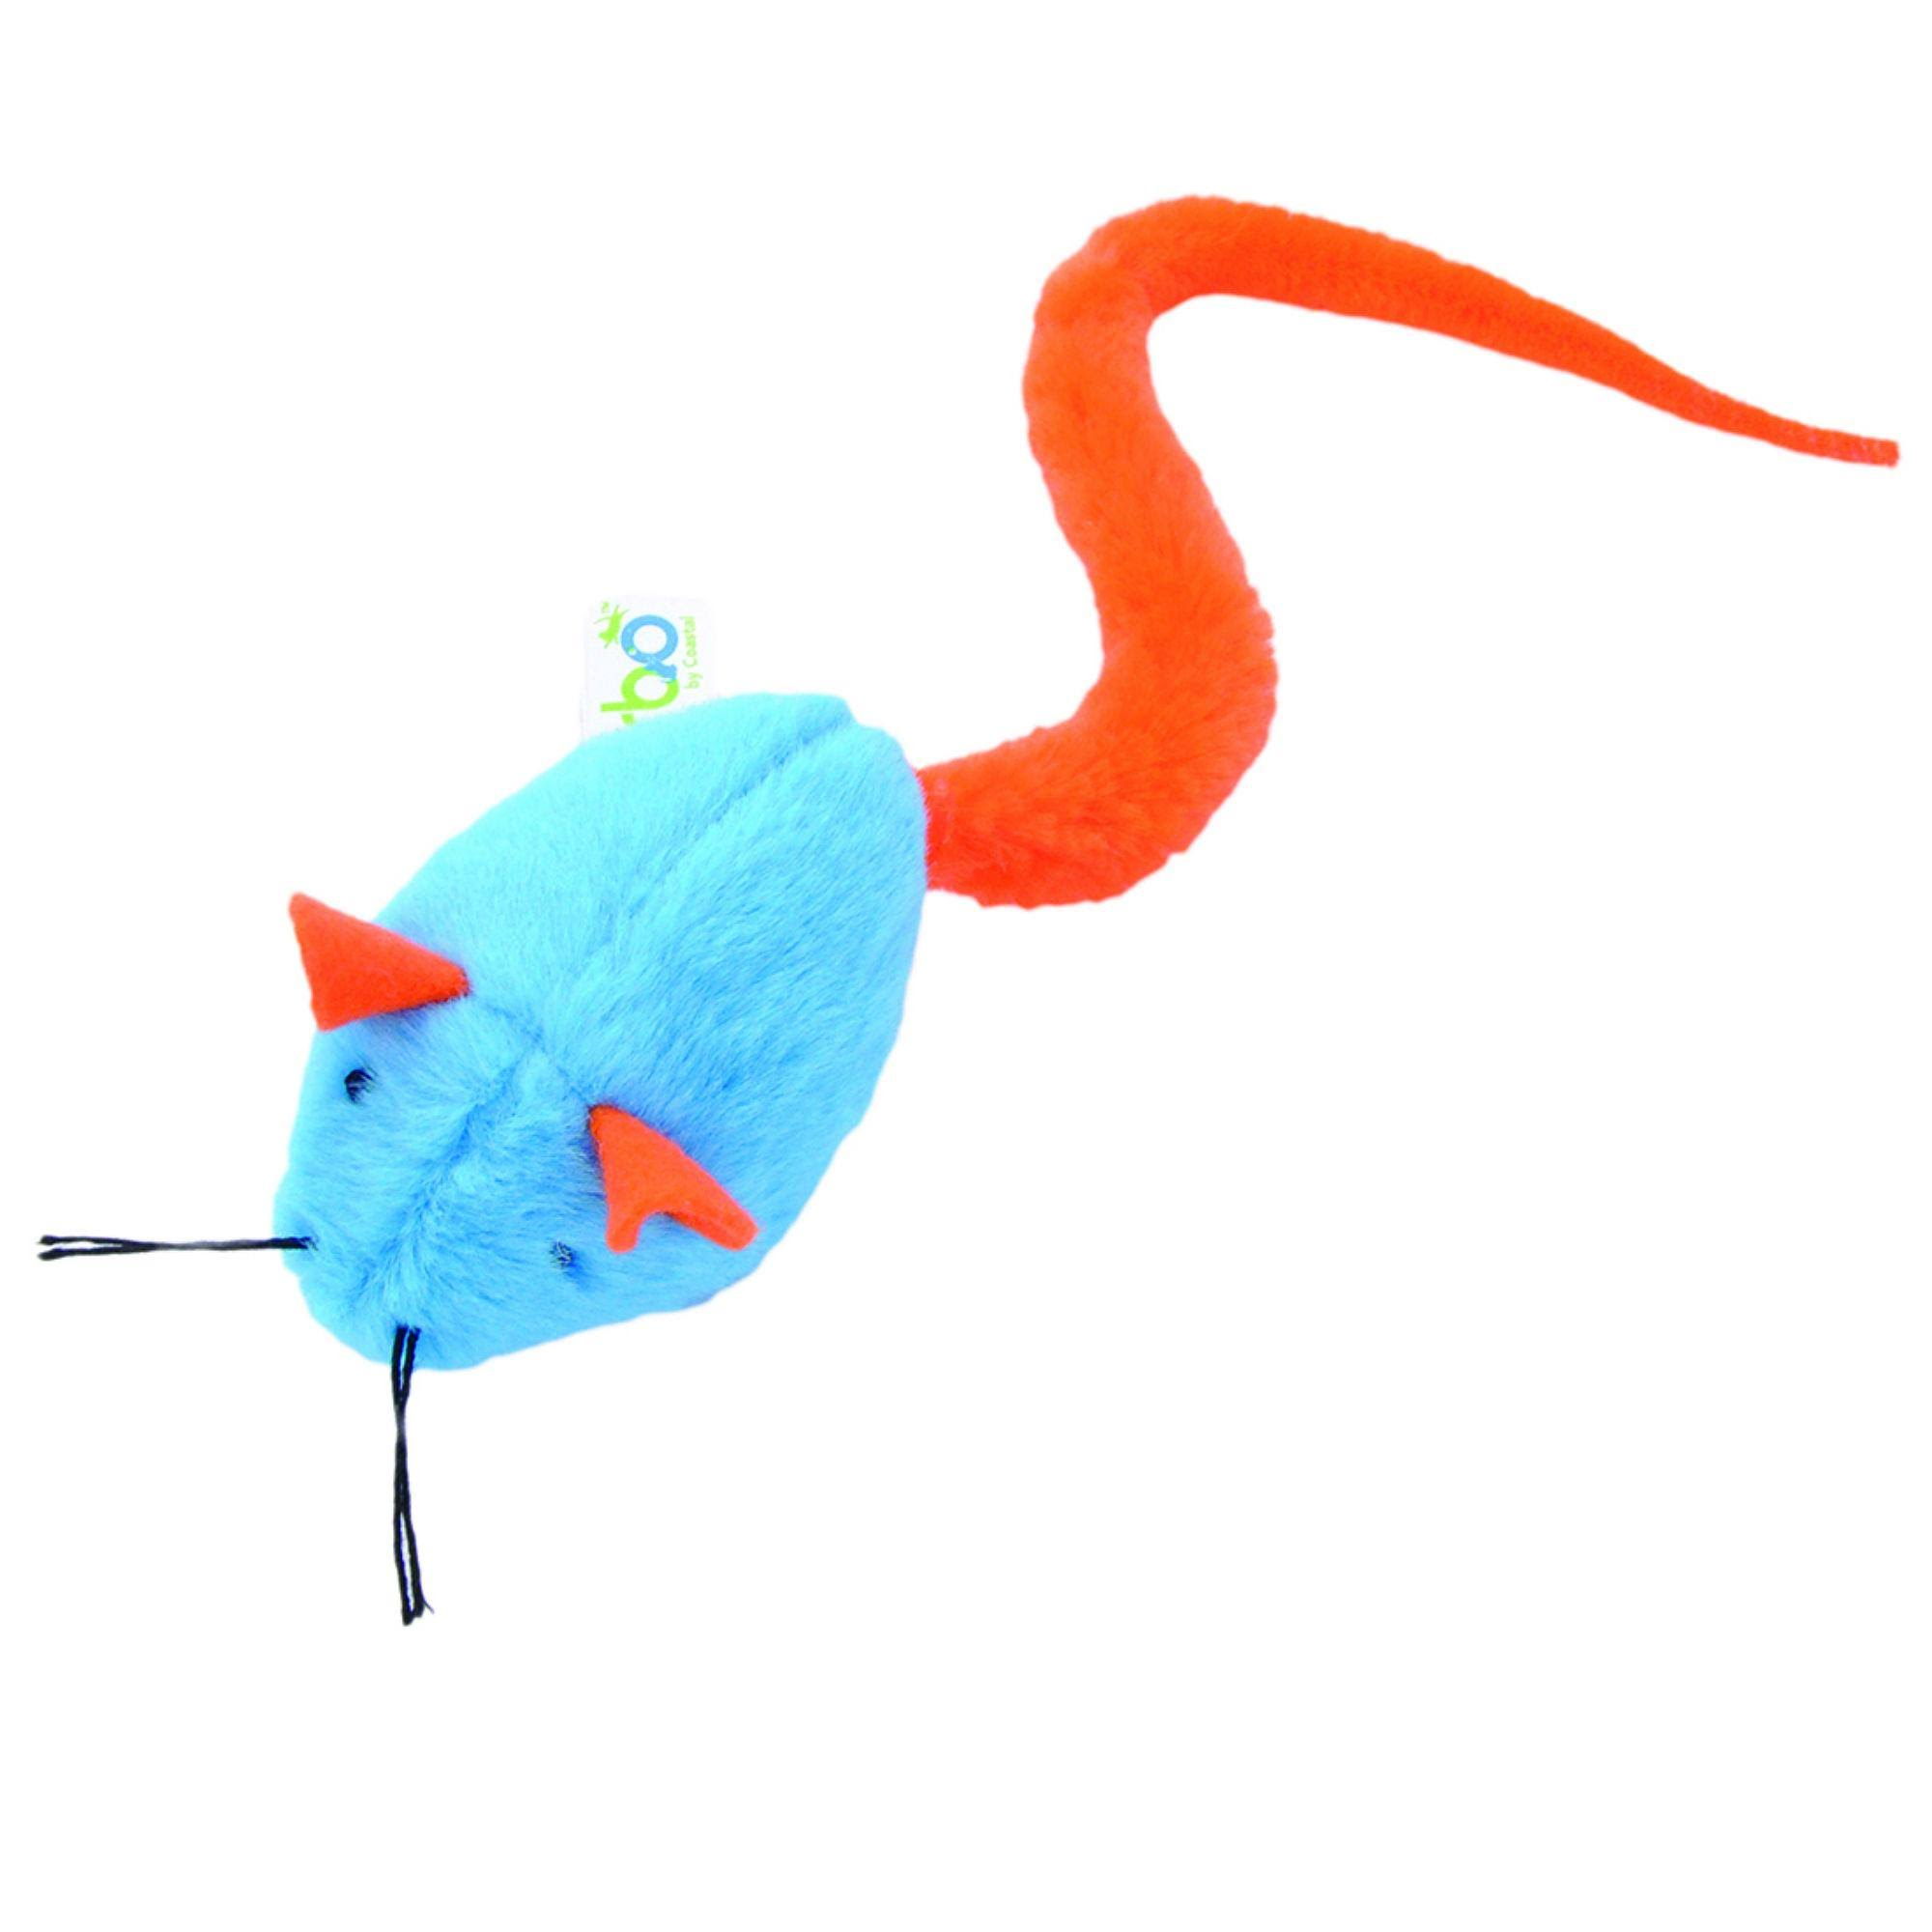 Turbo Tail Cat Toy, Rattle Mouse